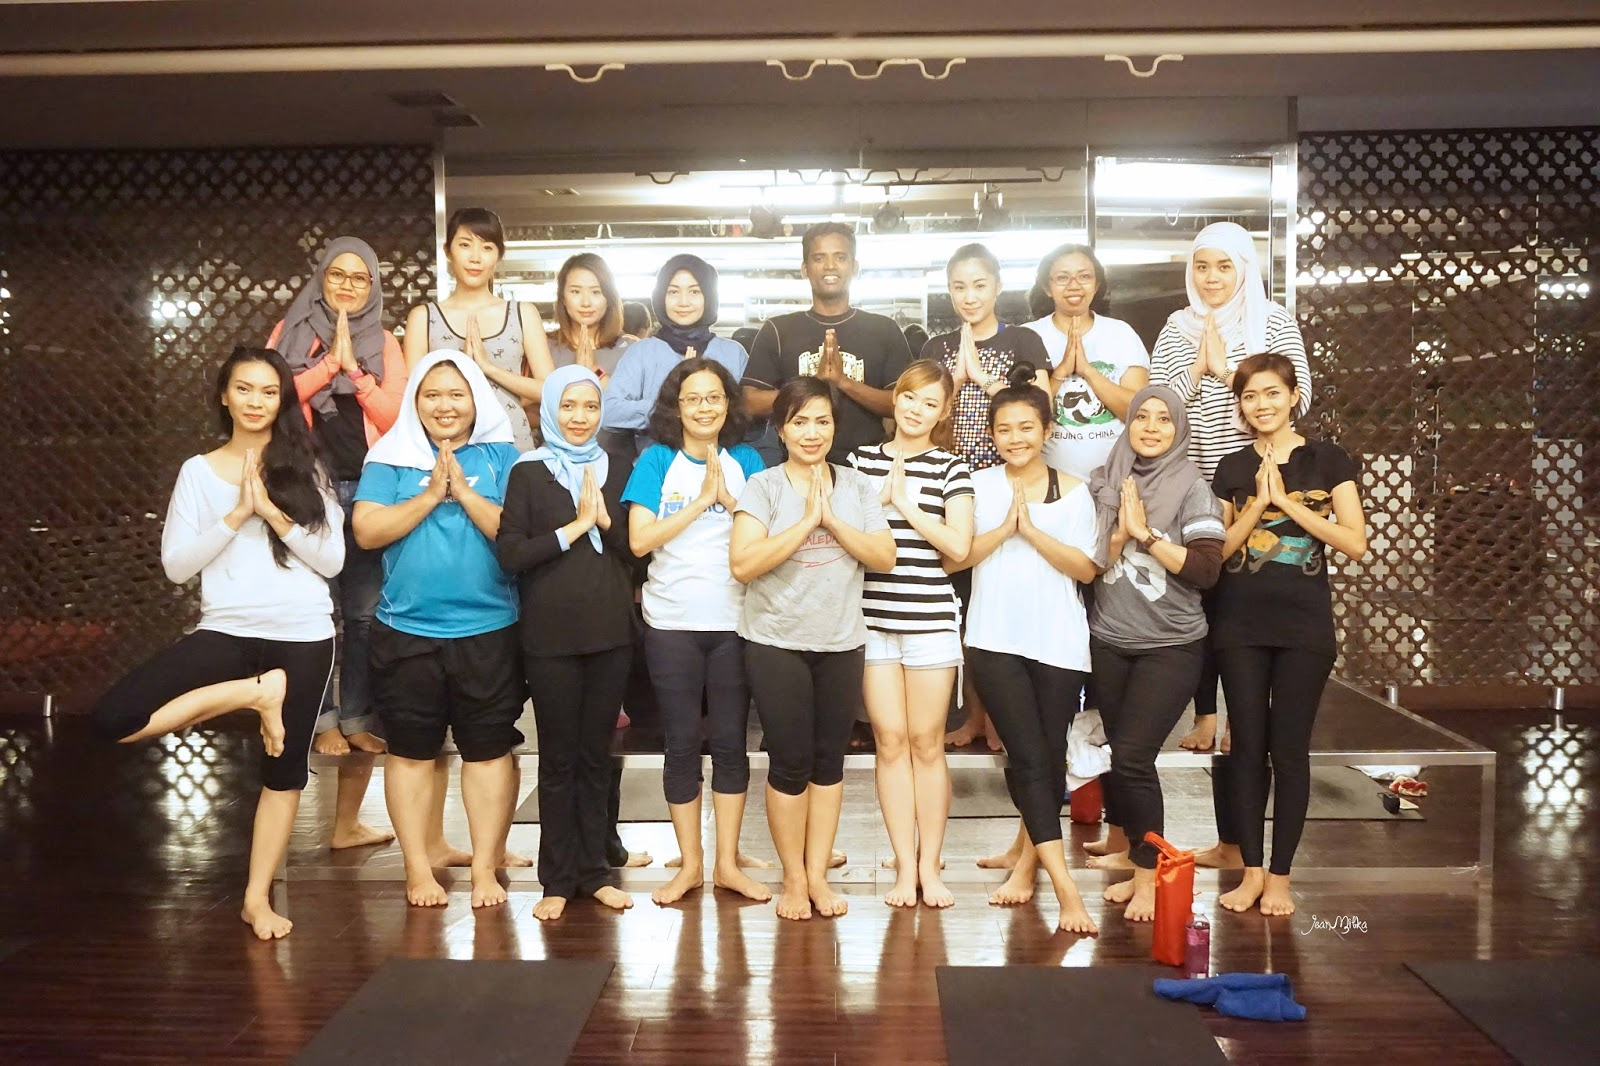 blogger, indonesian blogger, blogger gathering, fimaledaily, celebrity fitness, yoga class, yoga